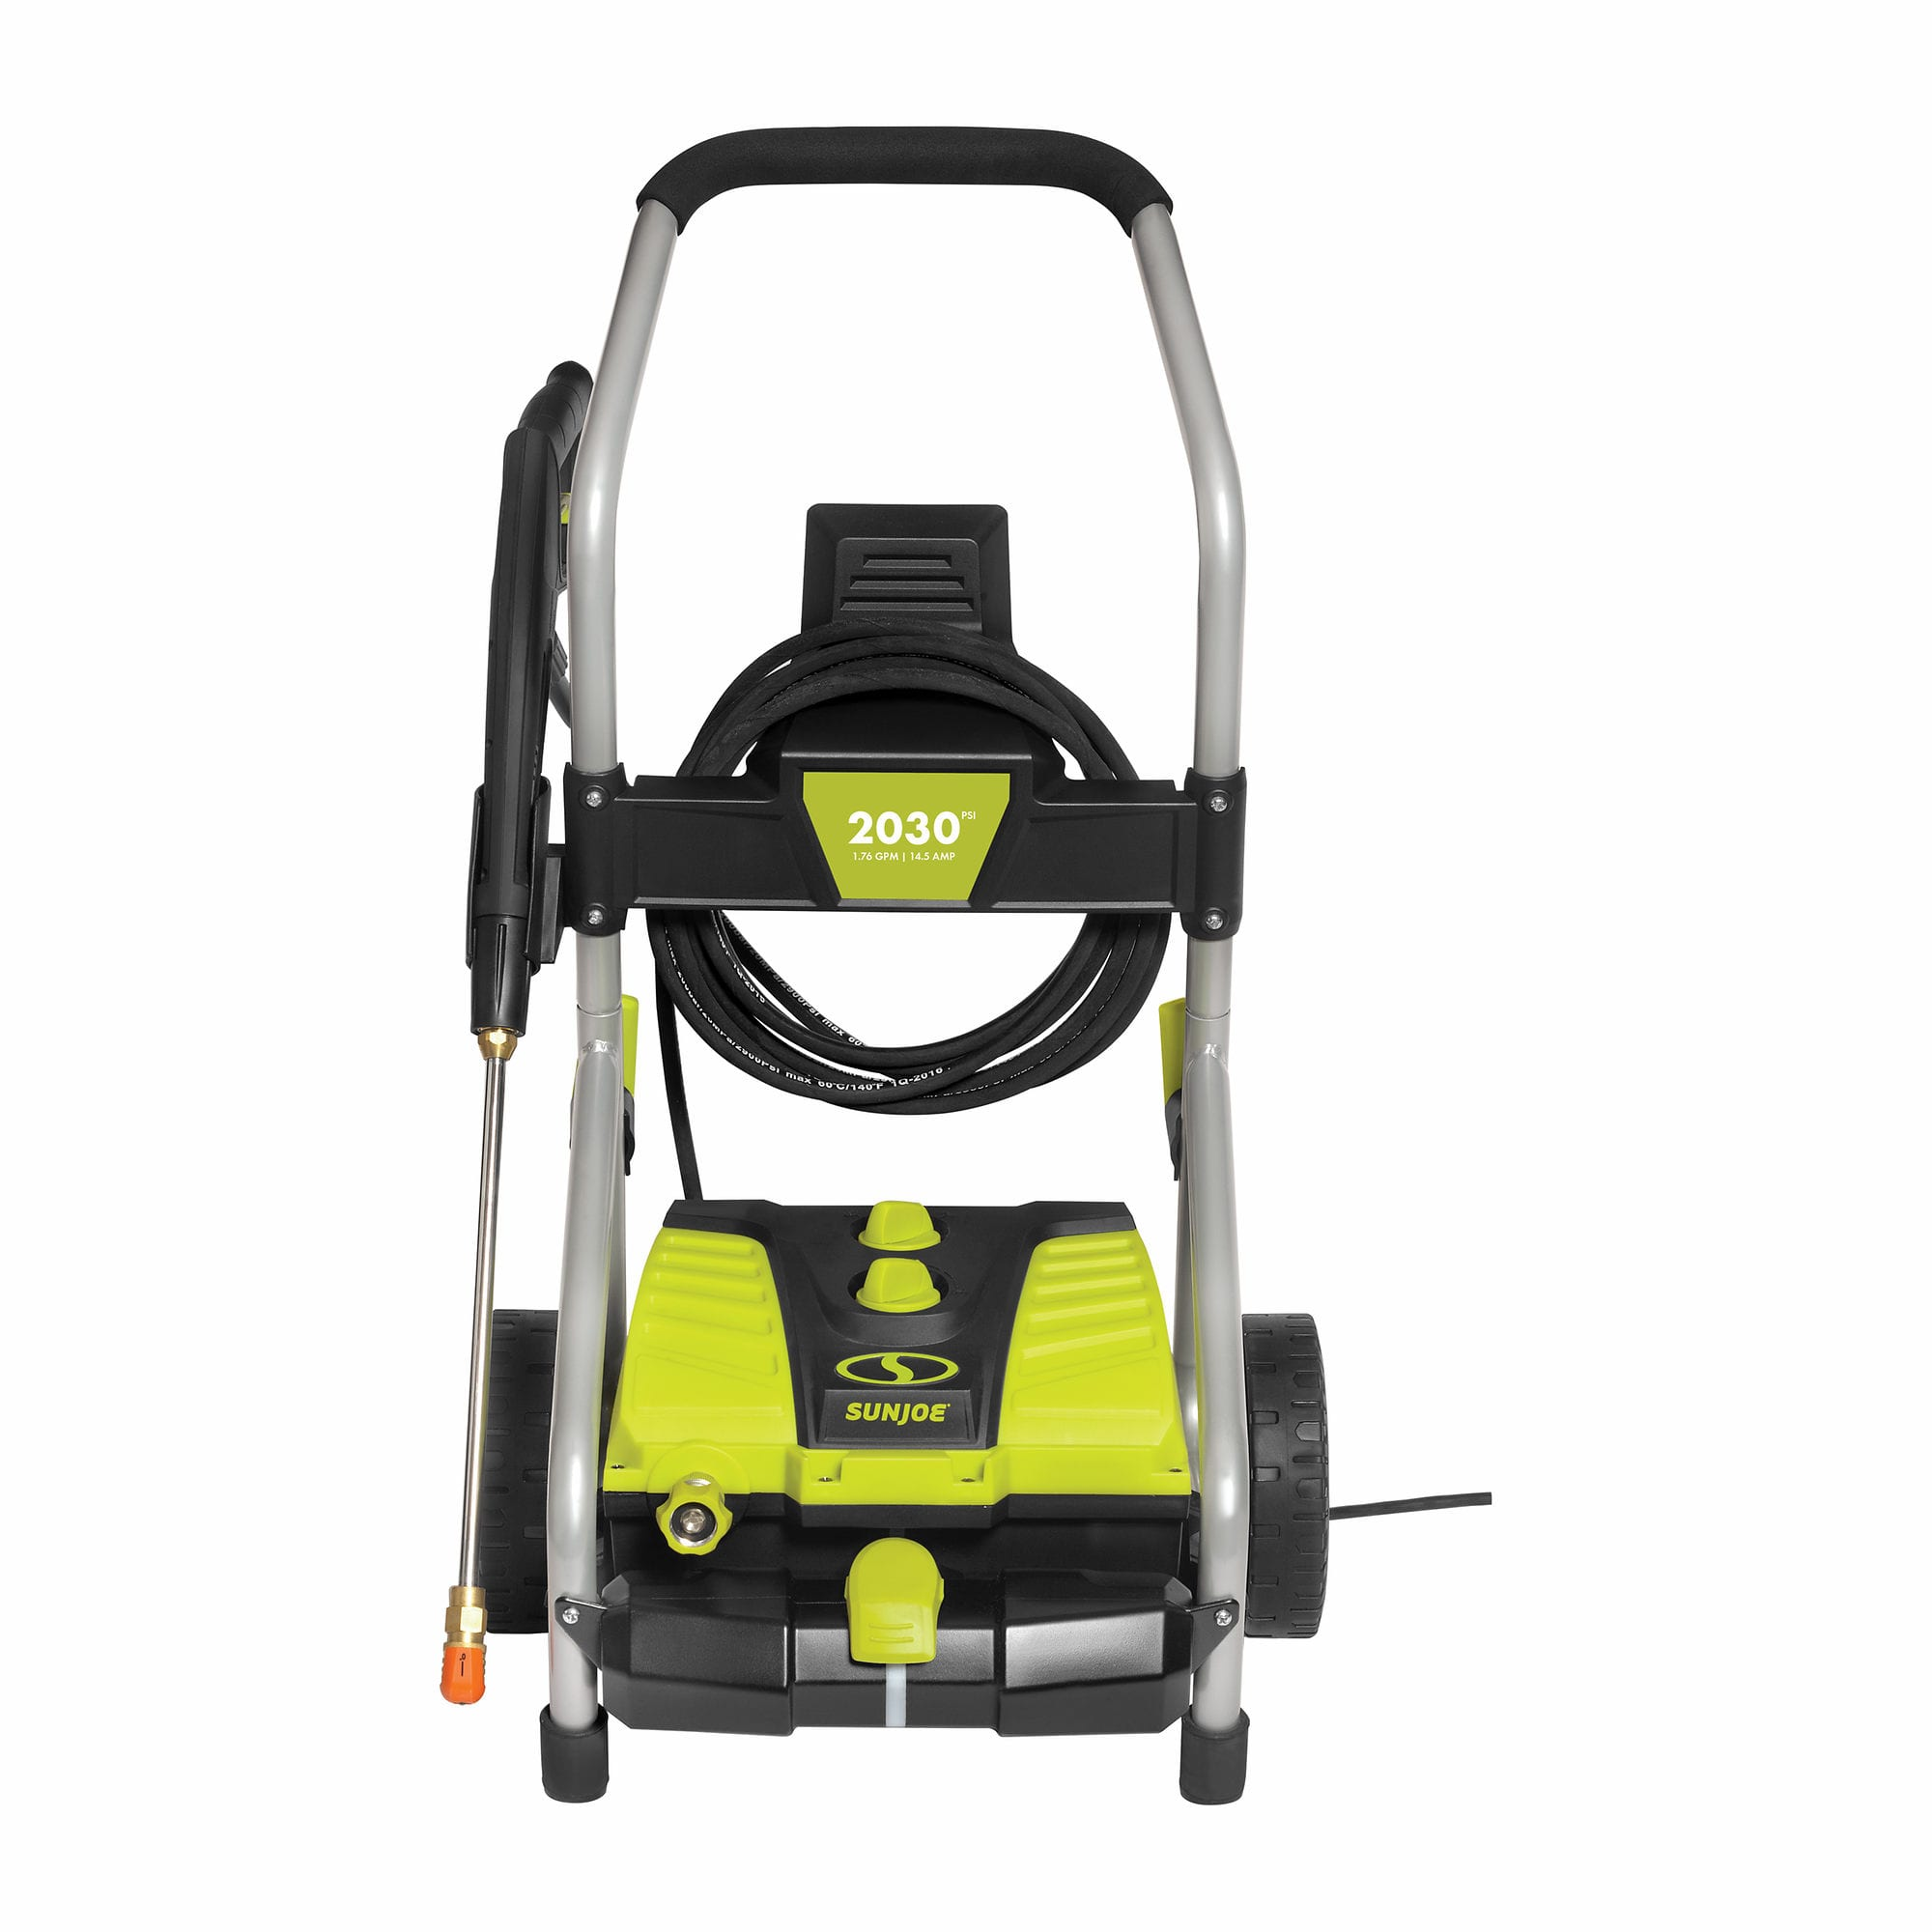 Sun Joe SPX4000 Electric Pressure Washer Slickdeals